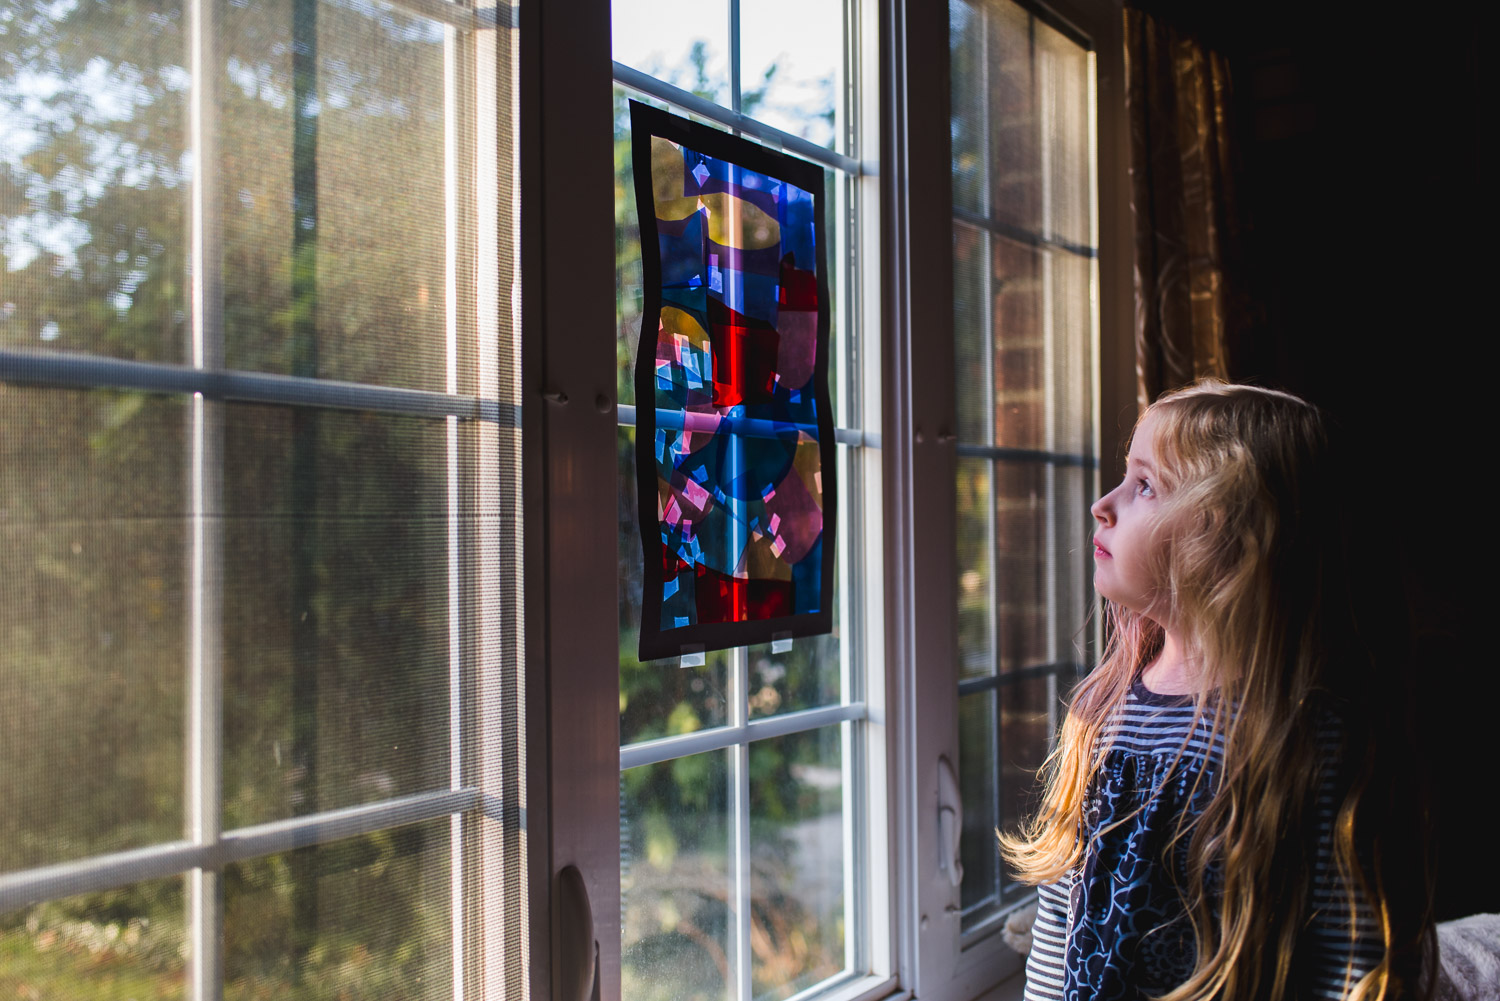 Little girl looking out stained glass window.